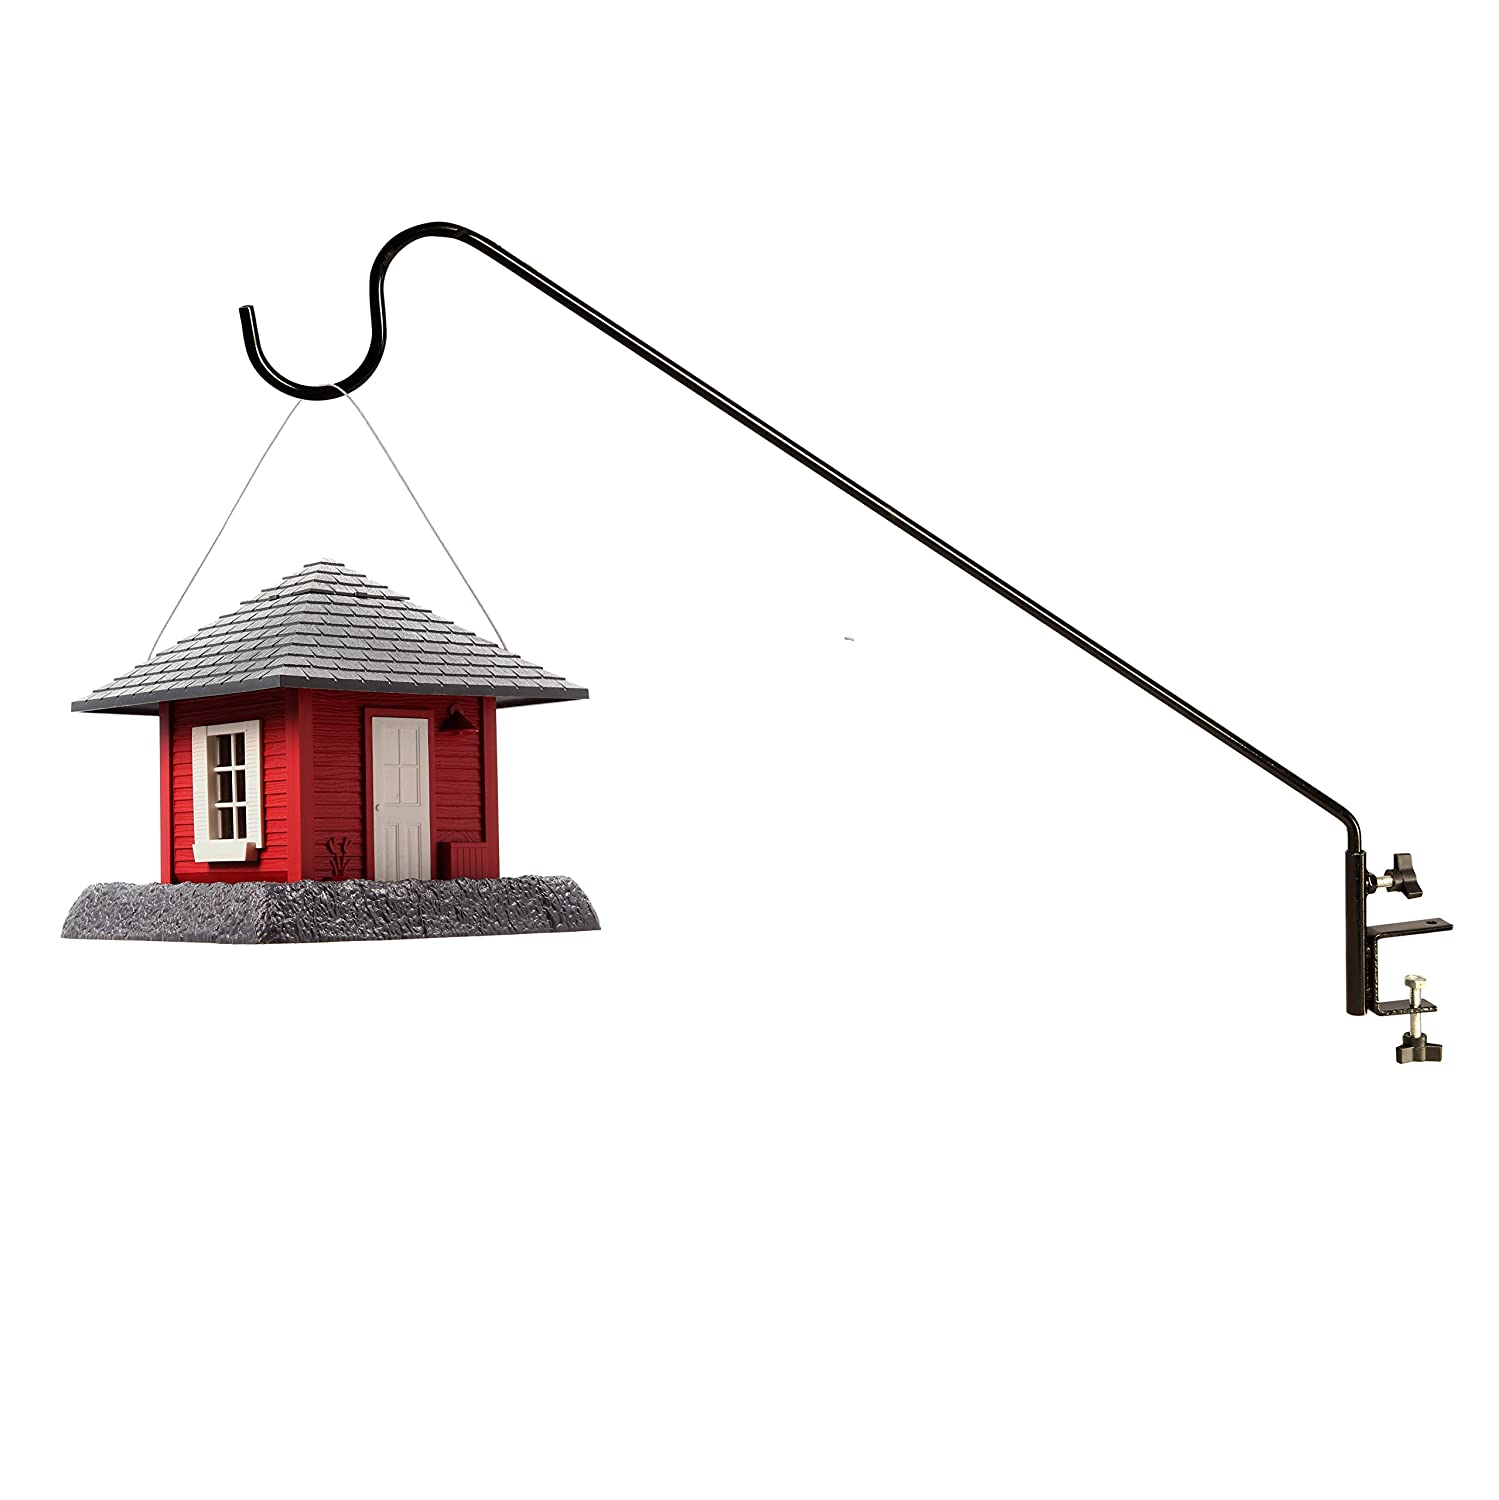 Ashman 12MM Black Deck Hook Humming Bird Feeders attaches to Deck Railing Super Strong with 37-Inch Length and Ideal for Bird Feeders Plant Hangers Hanging Baskets Made of Premium Metal